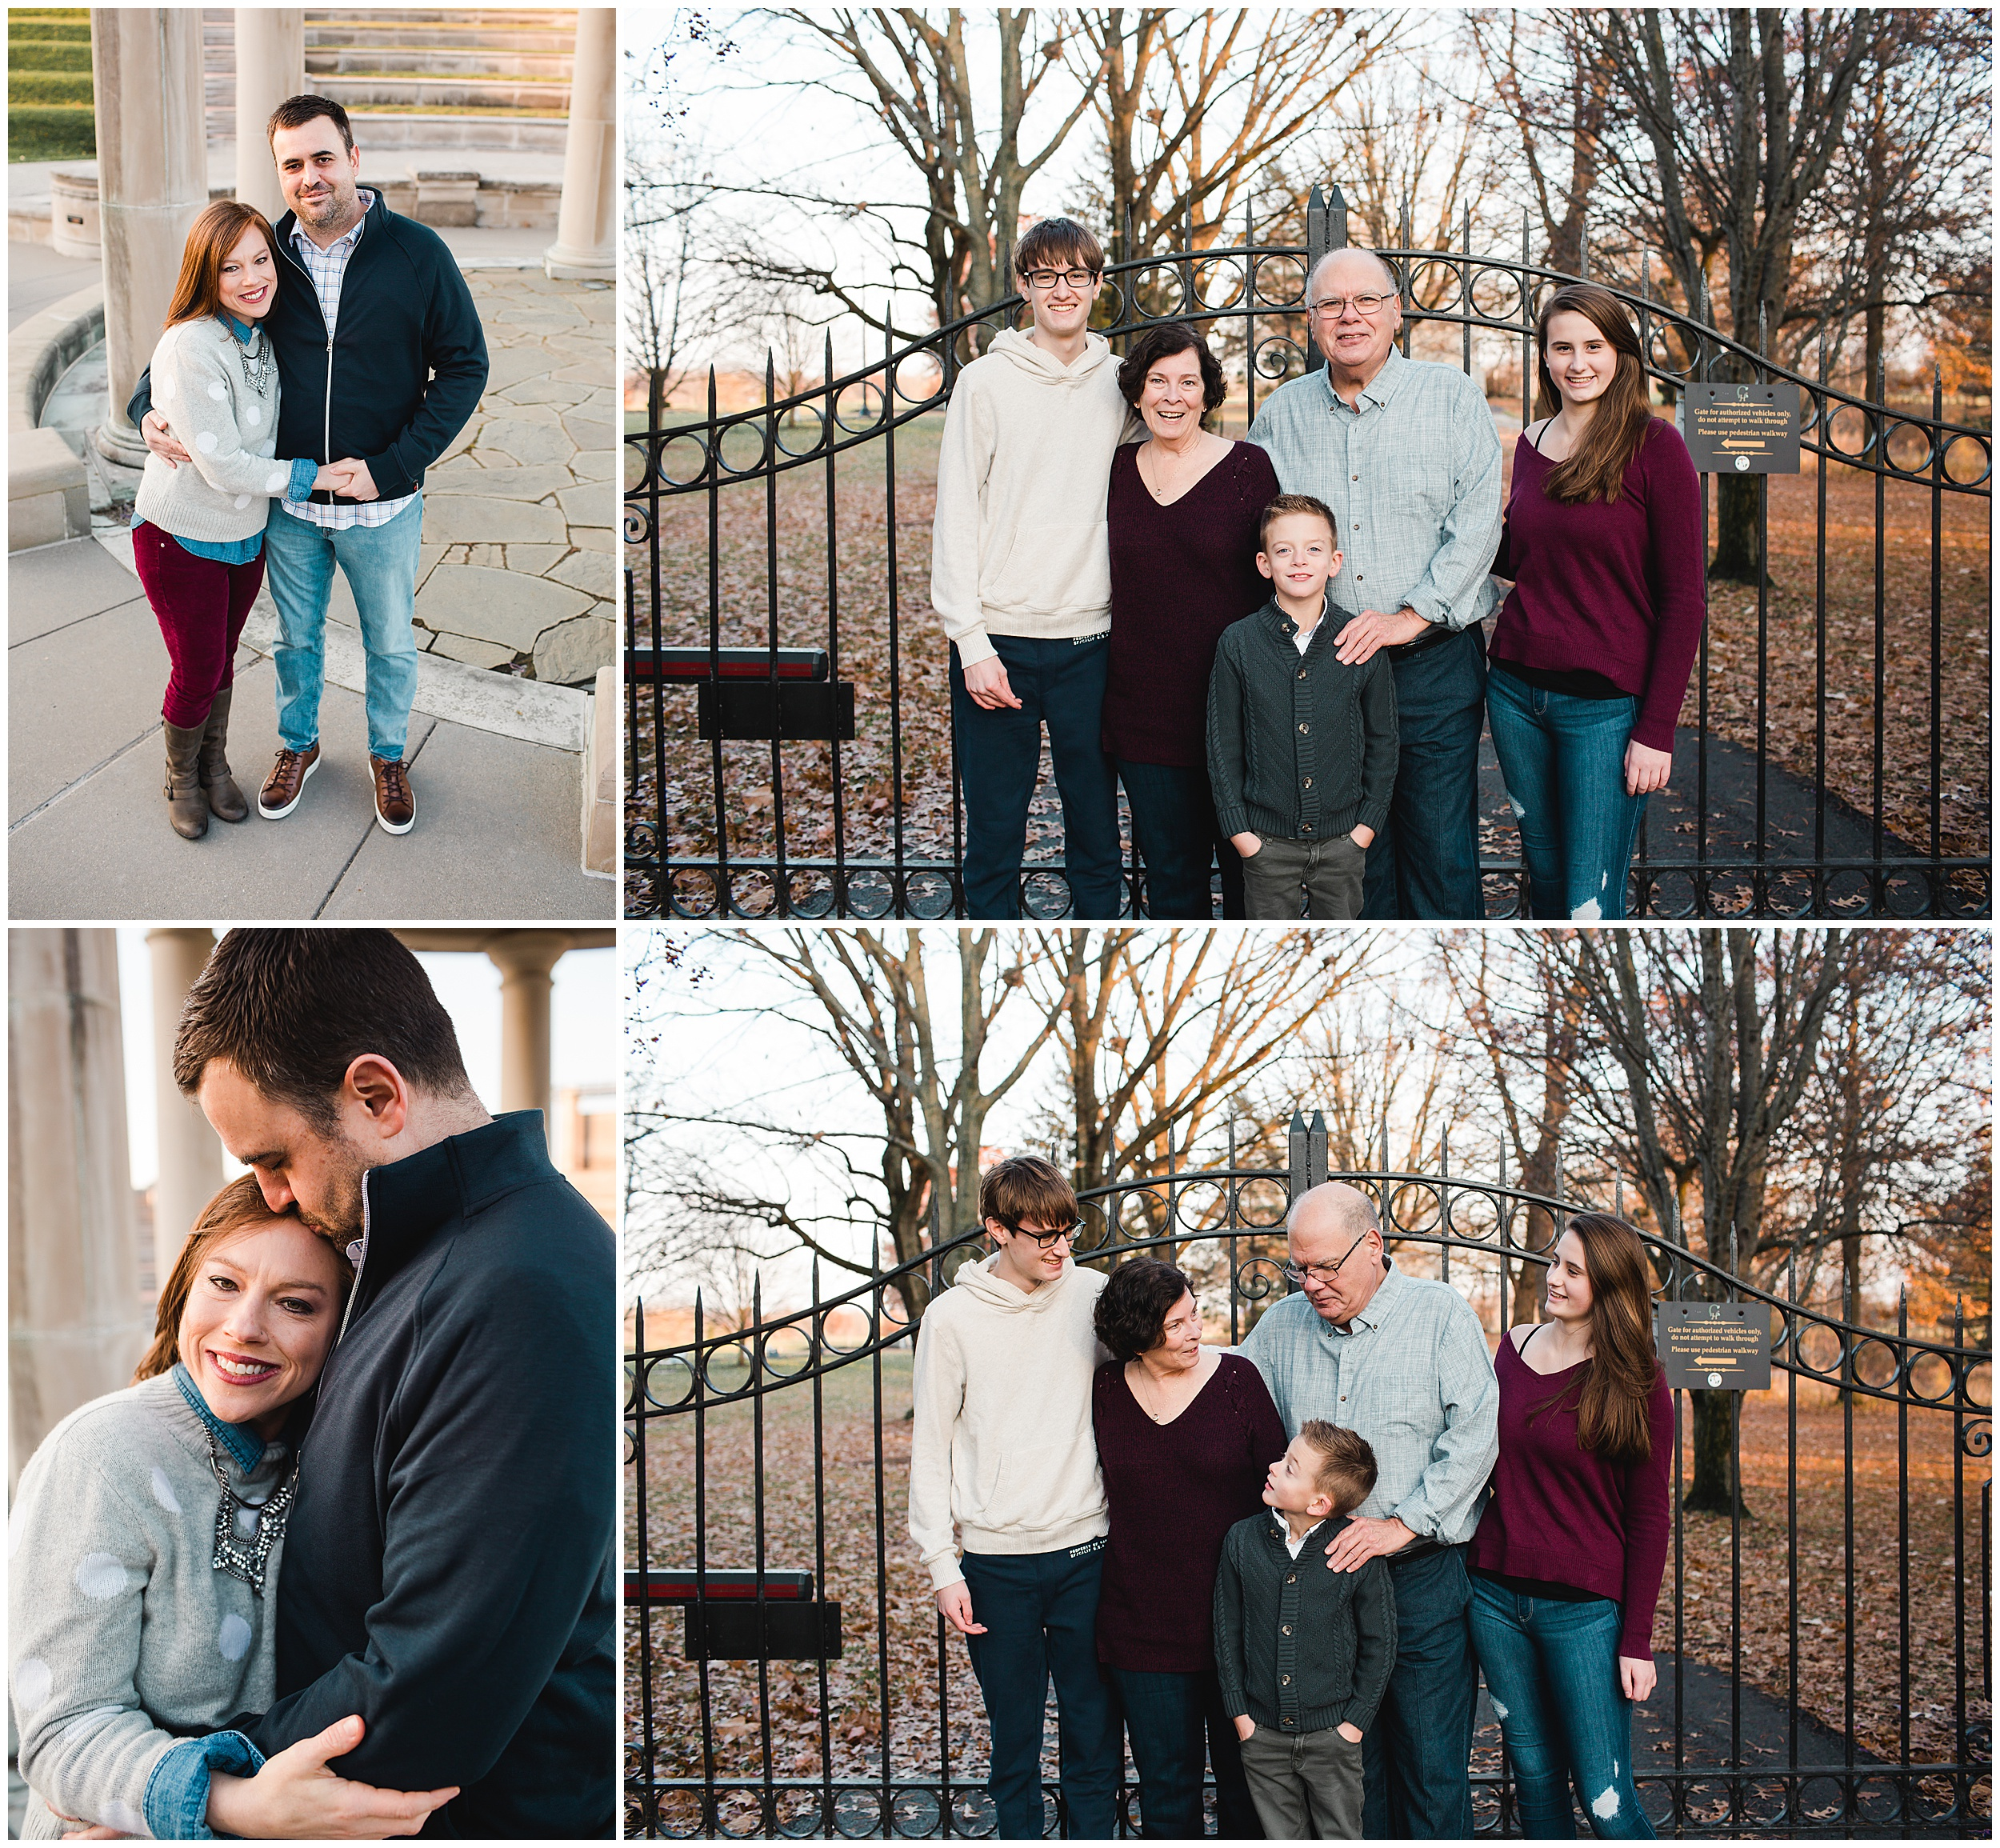 Indianapolis Extended Family Photographer at Coxhall Gardens in Carmel Indiana